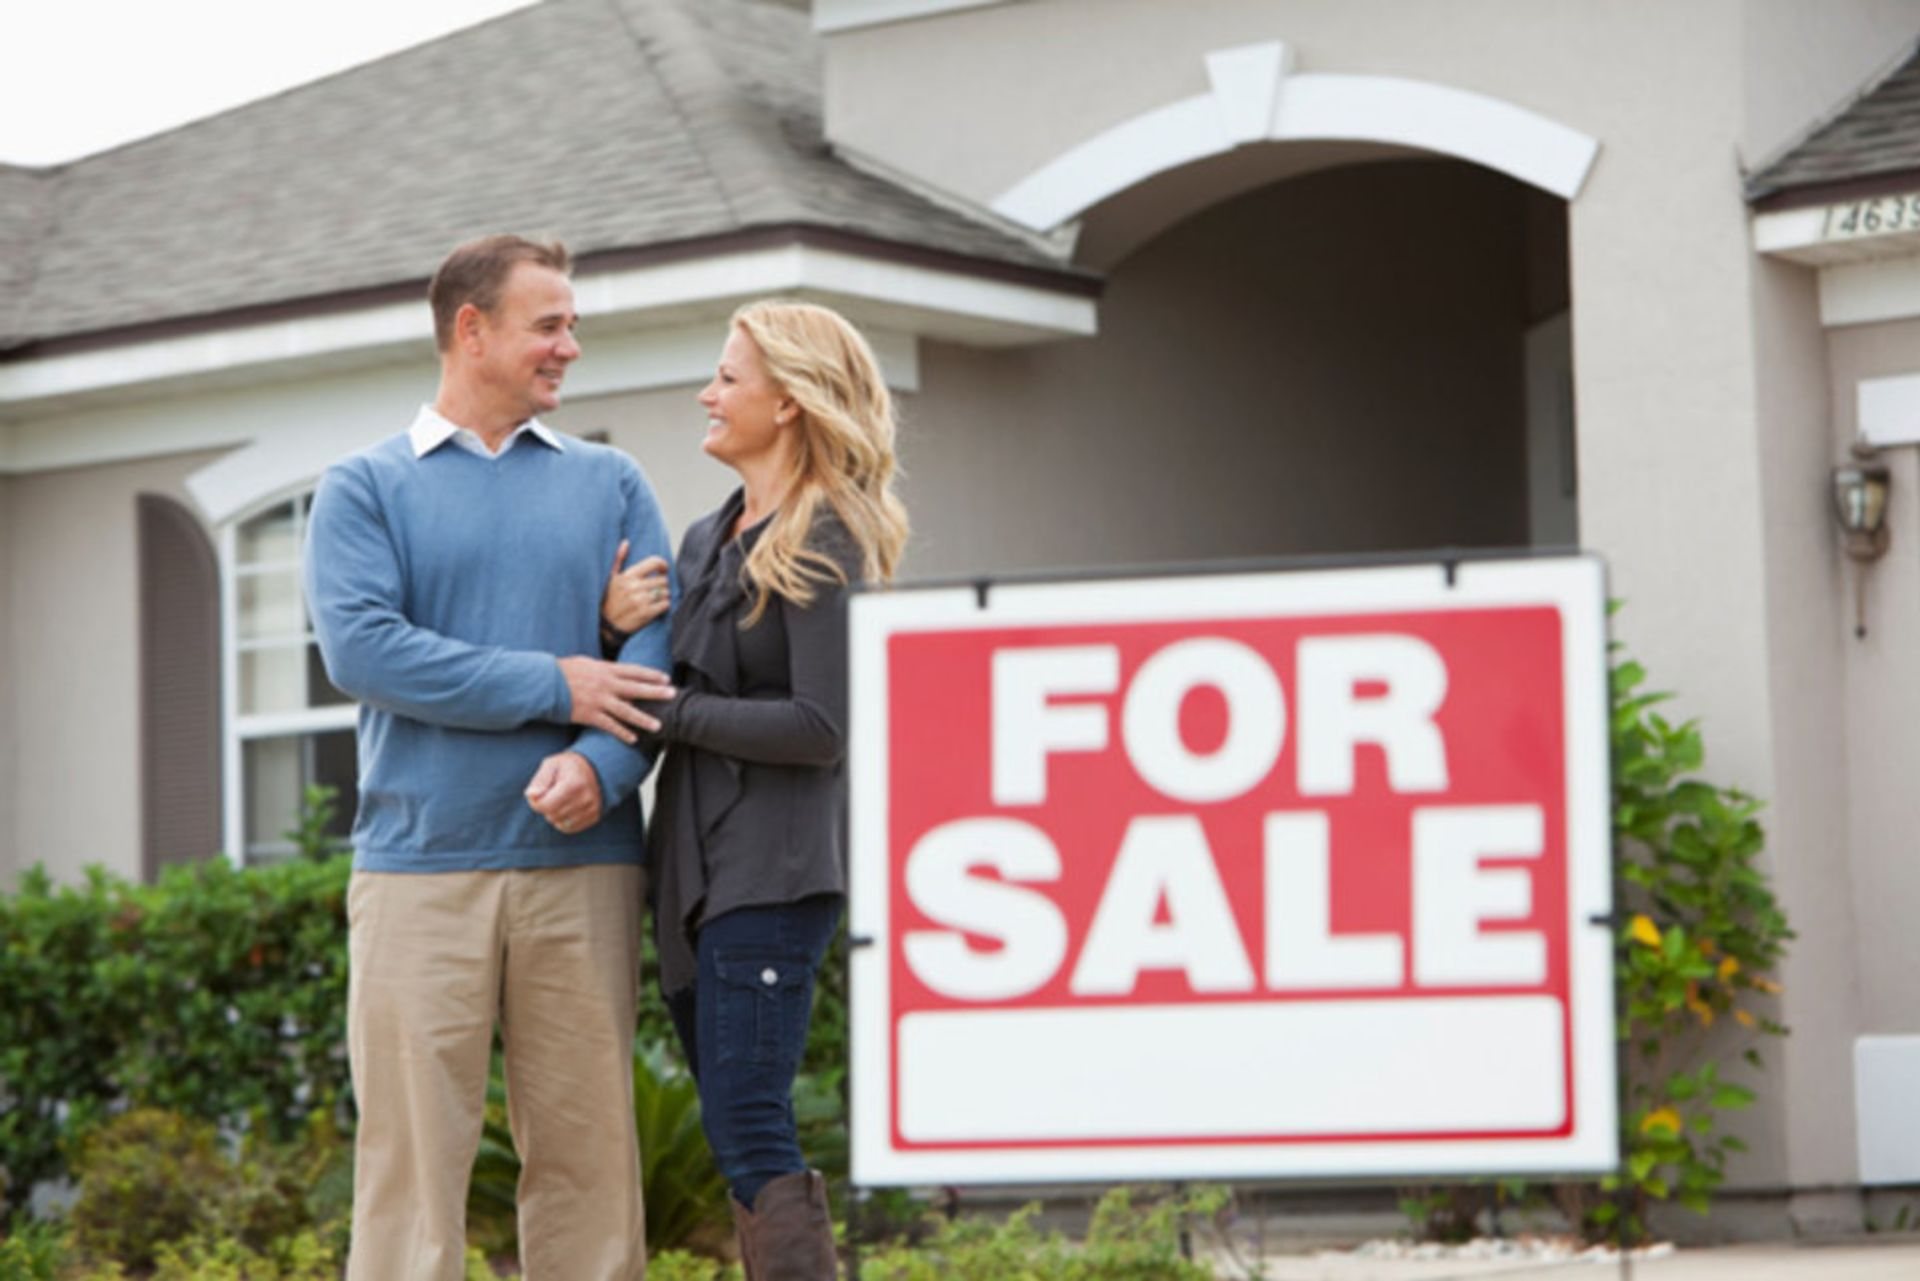 Debating When to Sell Your Home? Here's the Best Time to Put Your Home on the Market